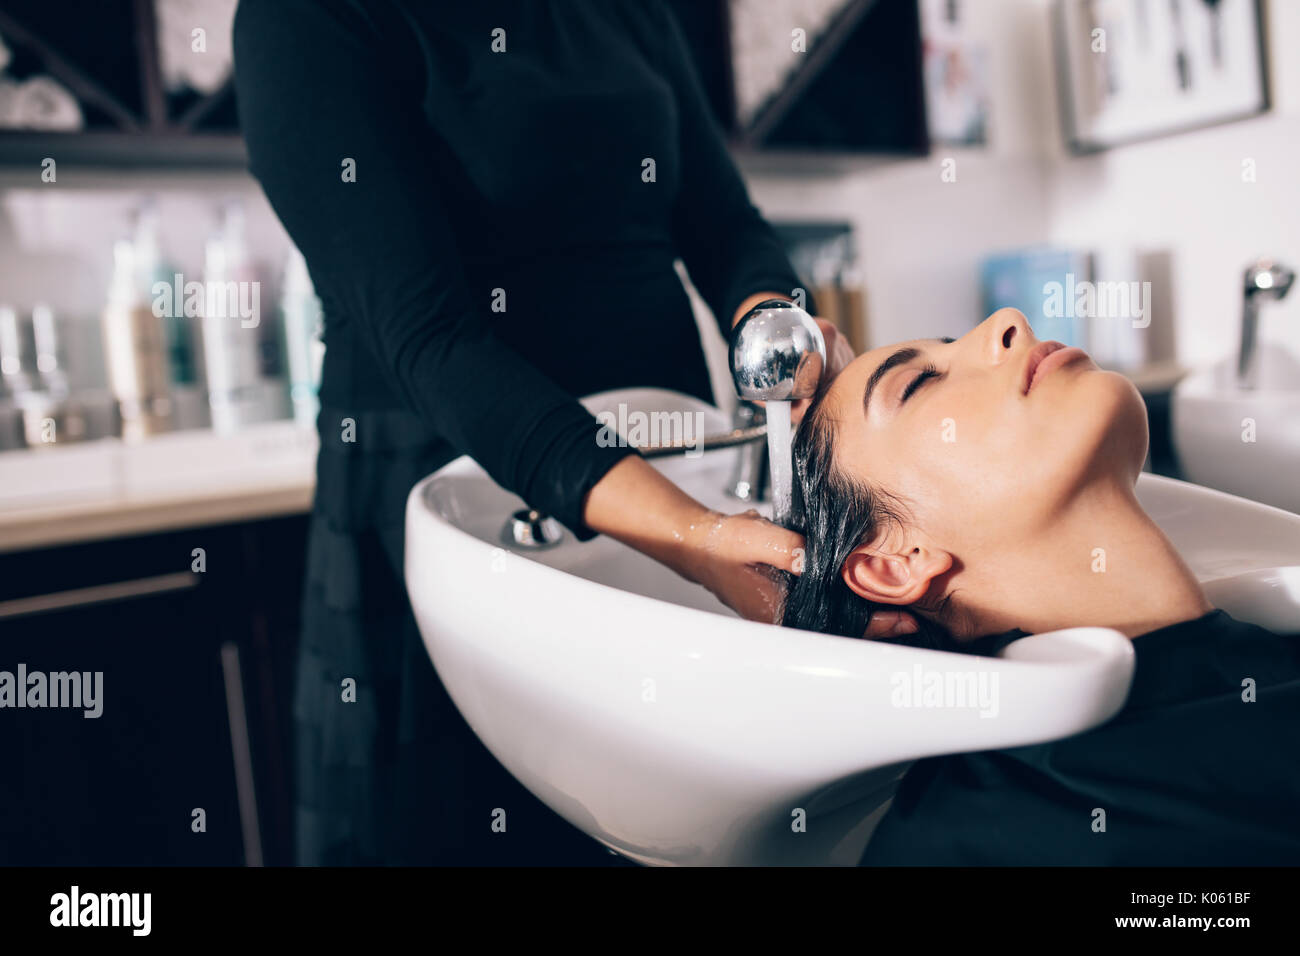 Closeup of hairdresser giving hair wash service to a customer at the salon. Woman getting hair spa treatment done at hair salon - Stock Image